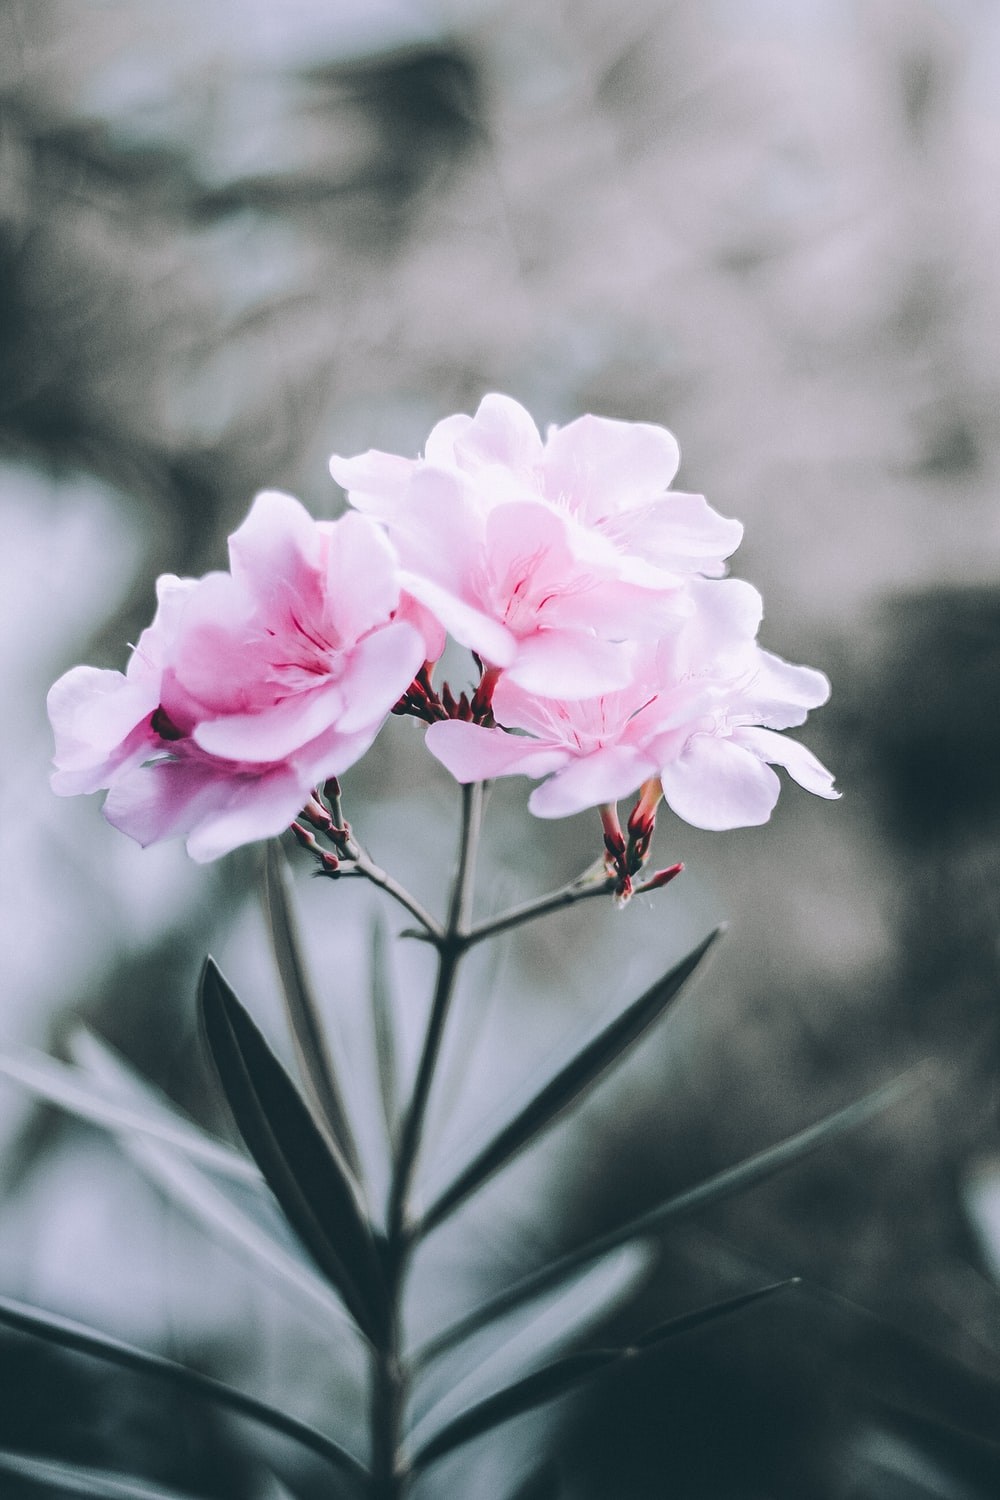 selective focus photo of pink broad petaled flowers